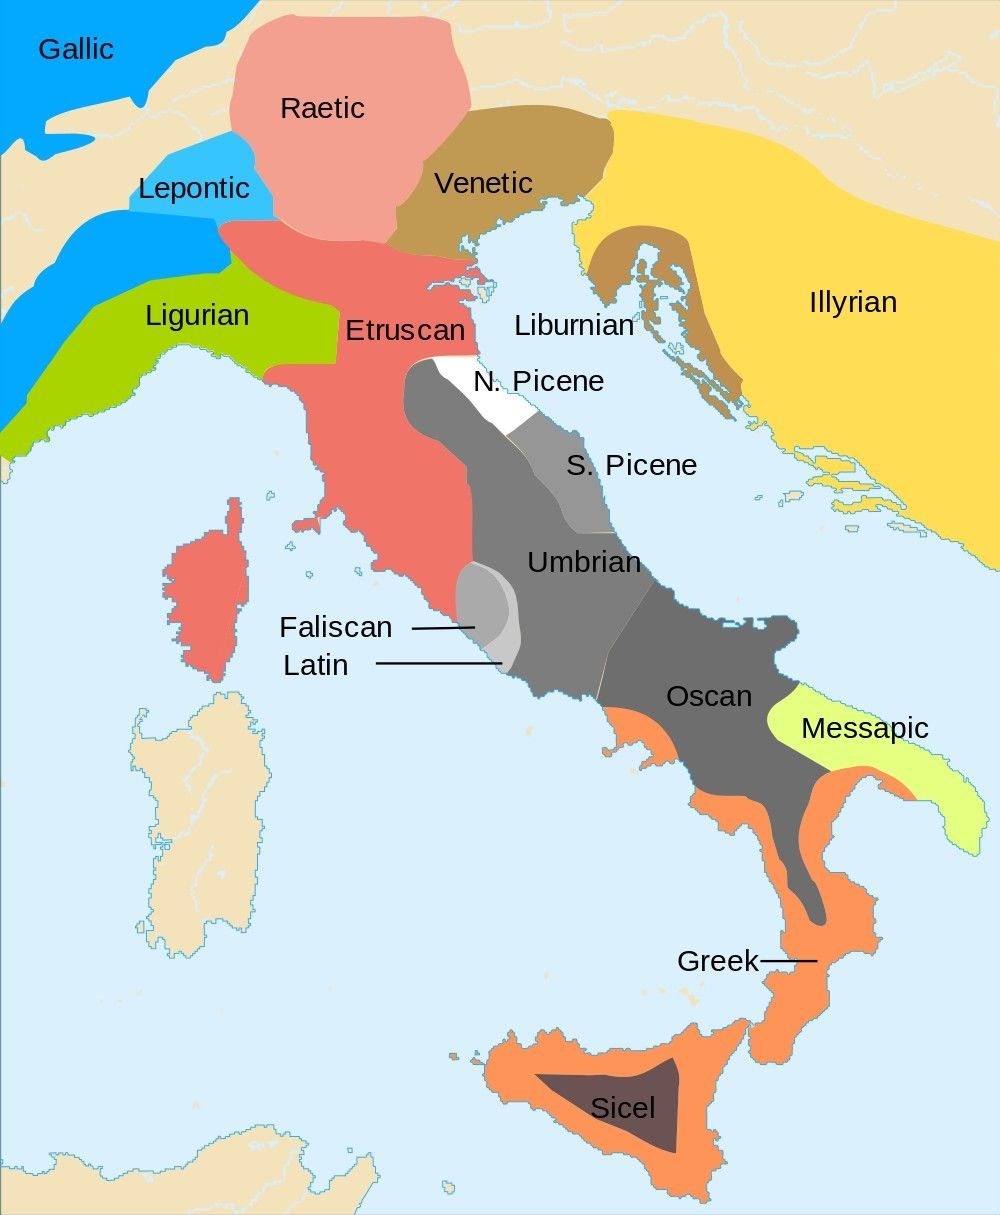 Map Of Italy And Surrounding Areas.600 Bc Languages Of Italy And Surrounding Areas Diagrams Charts